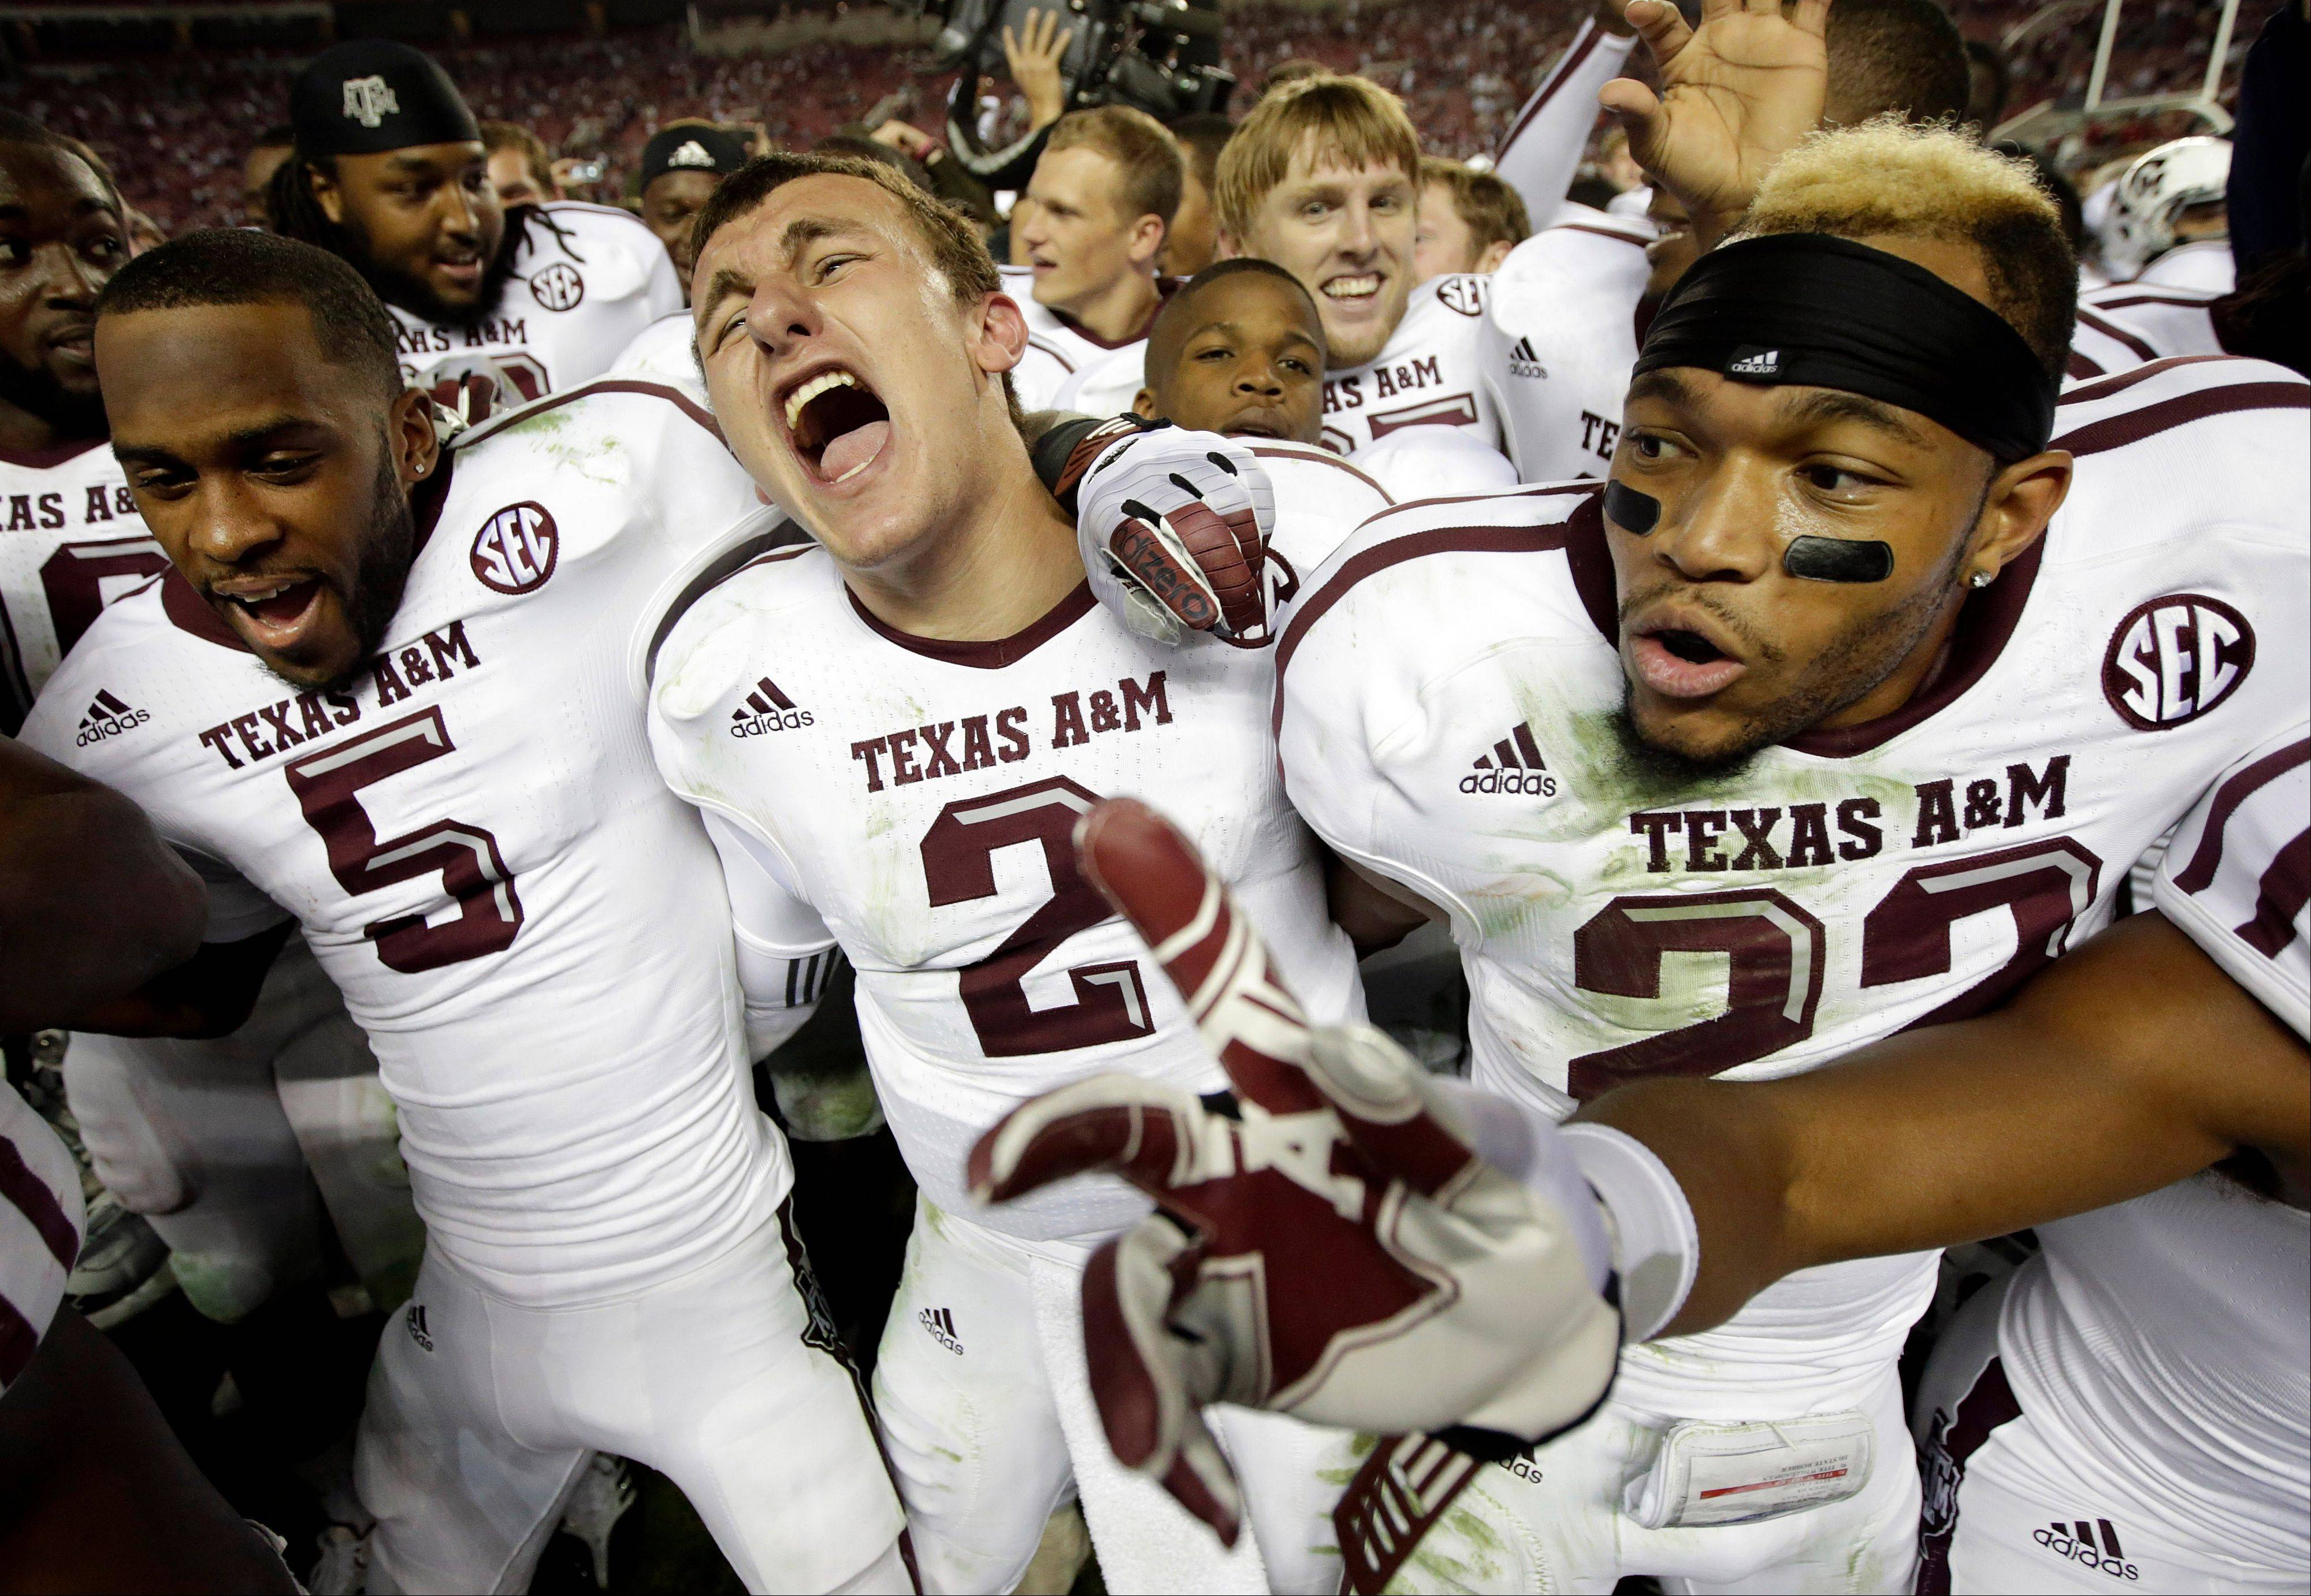 Texas A&M quarterback Johnny Manziel (2) was excited after leading his team to an upset over Alabama last November. The two teams meet again on Saturday.